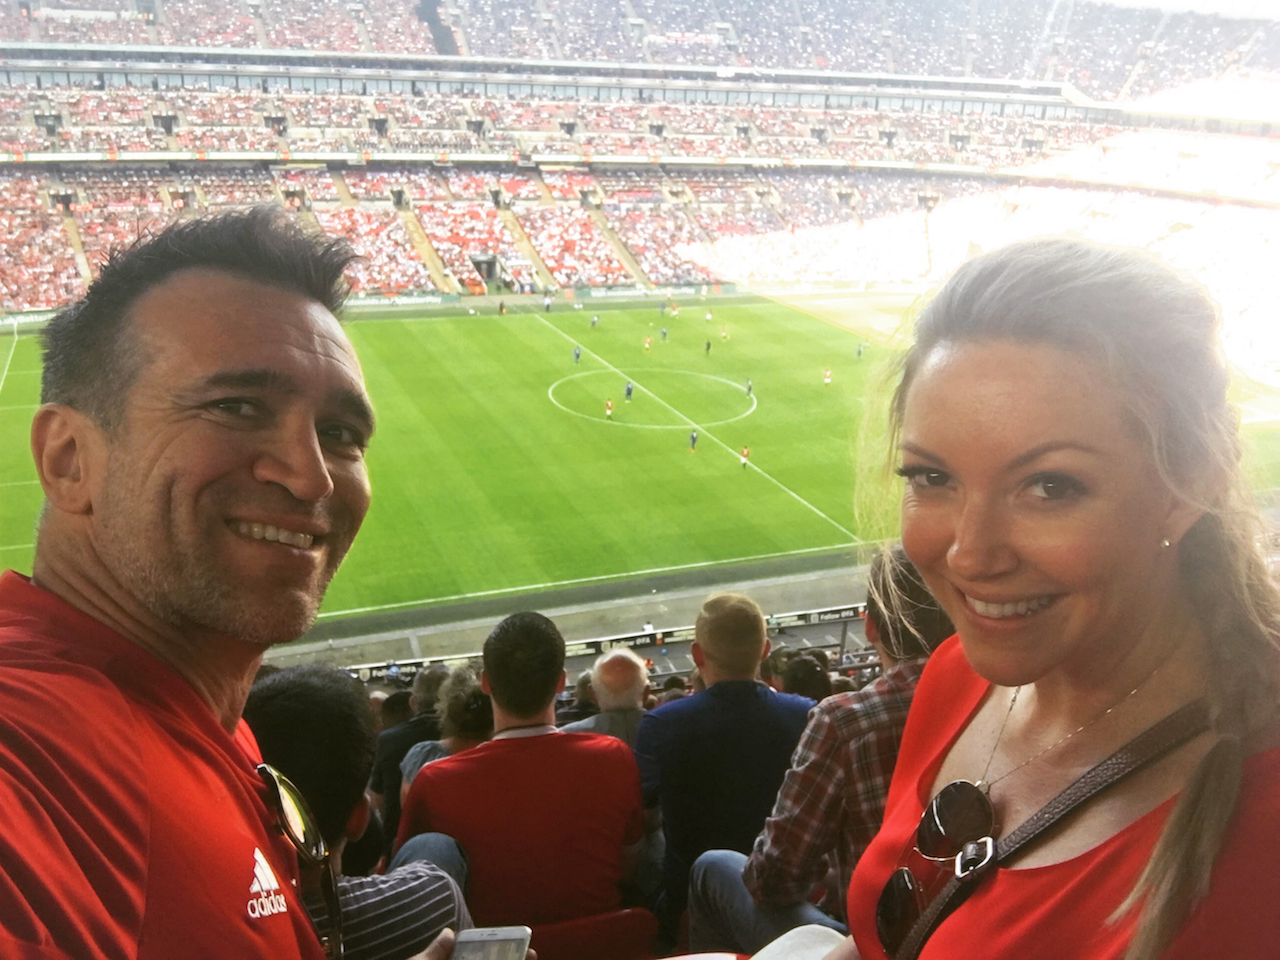 sox-and-bailey-at-wembley-stadium-copy